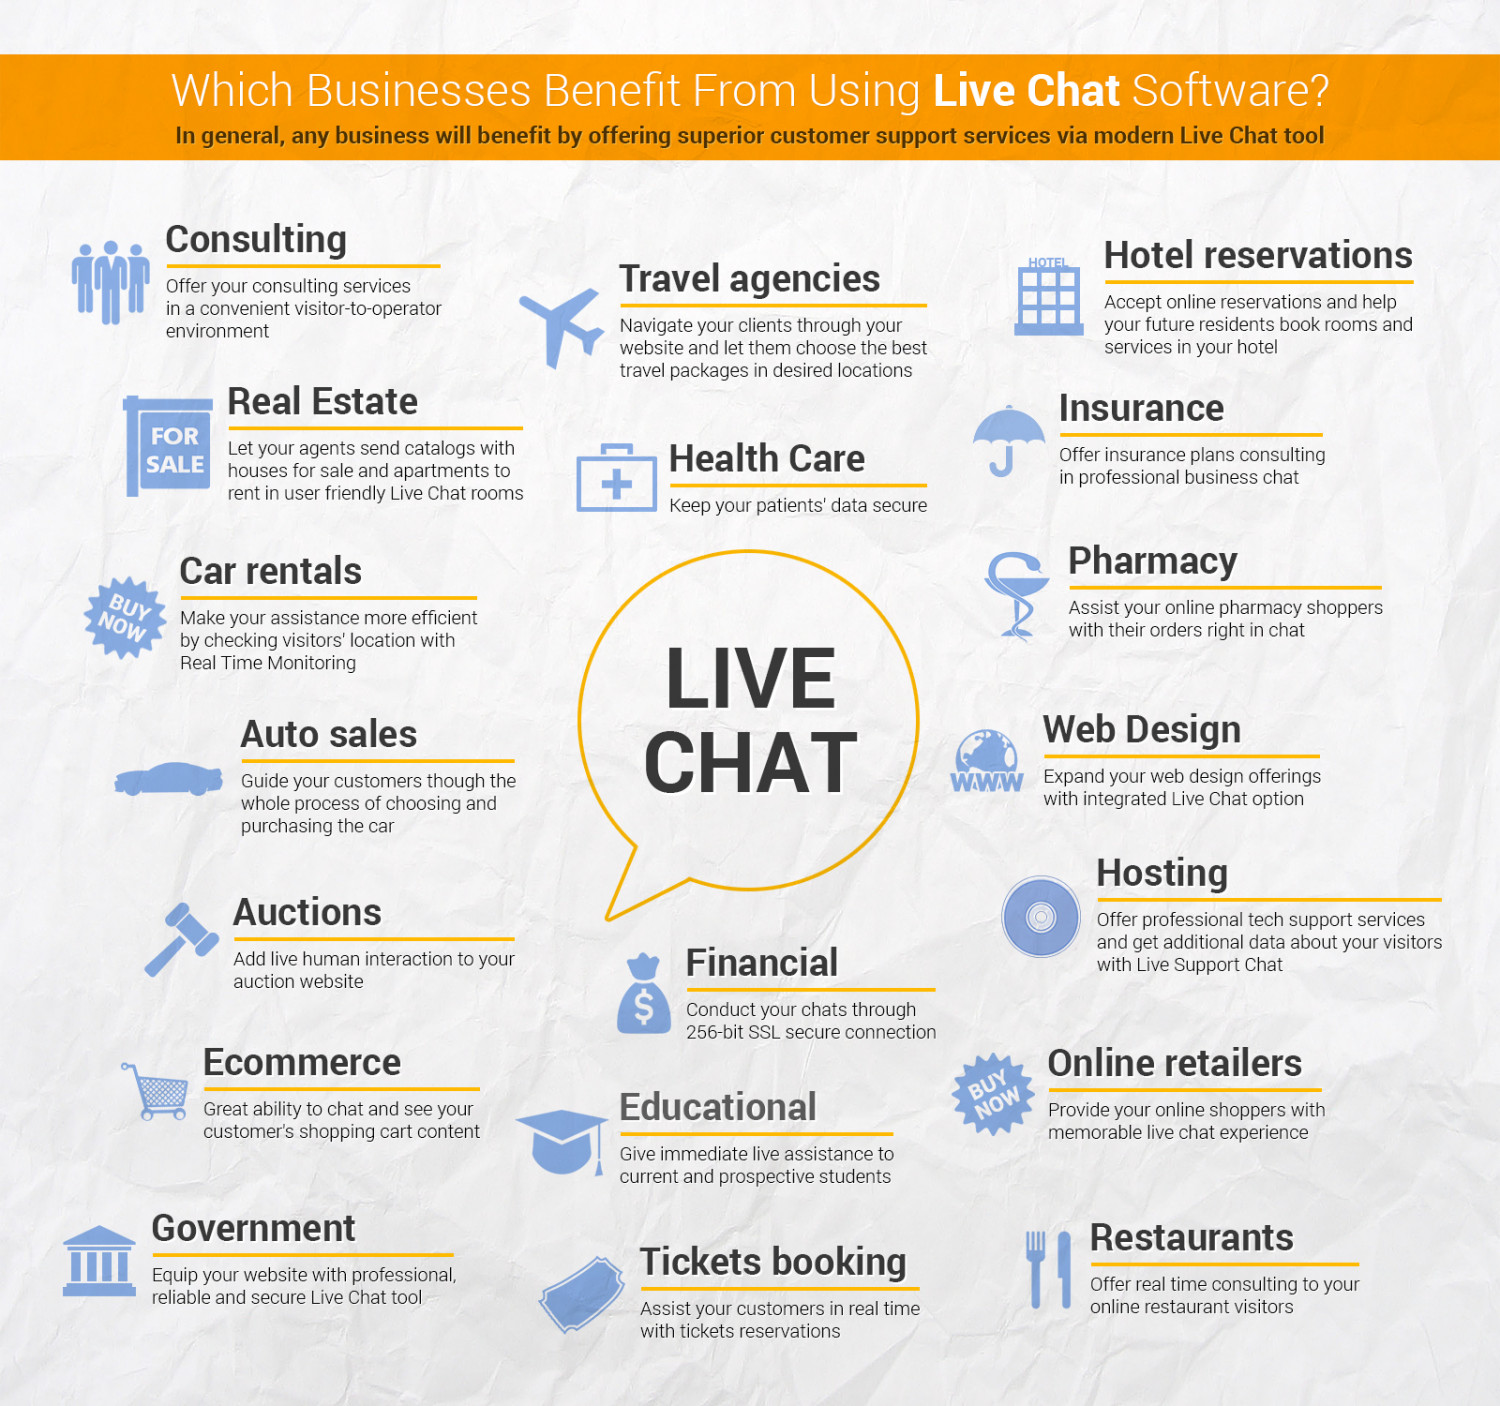 What Types of Businesses Can Benefit From Live Chat Software Infographic